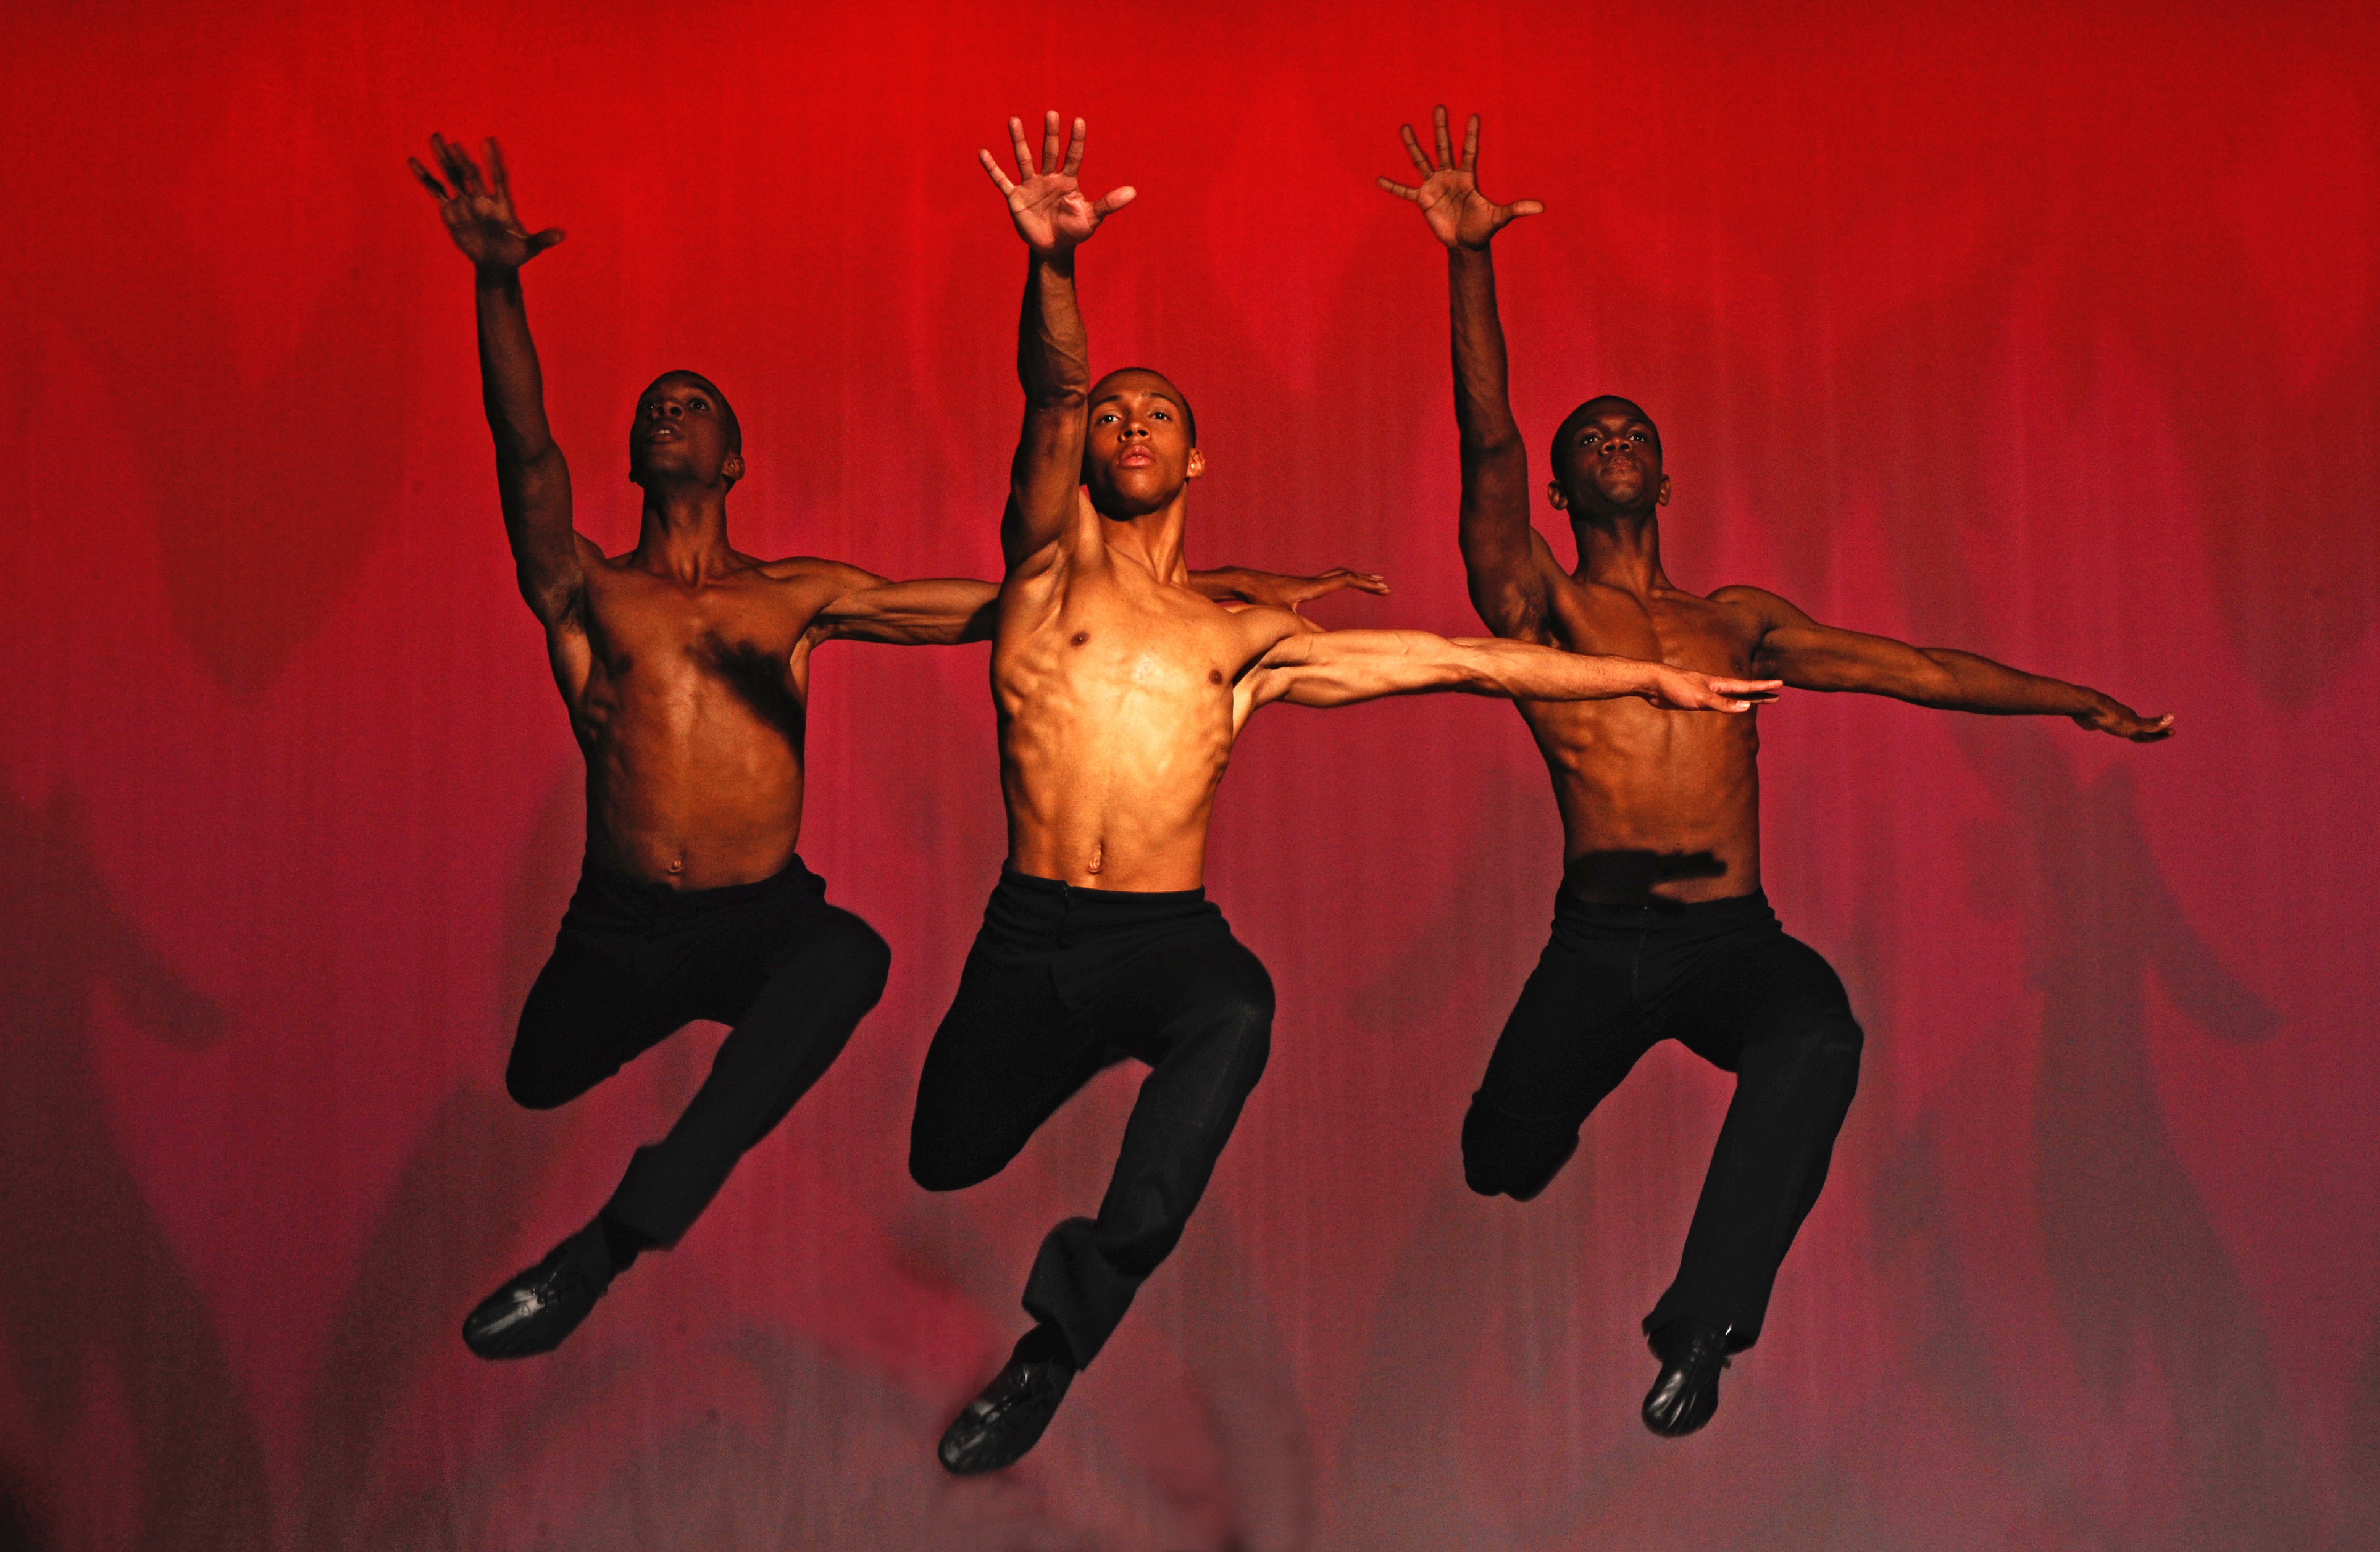 alvin ailey revelations Revelations: the autobiography of alvin ailey relates the powerful story of one man's painful search for identity despite a lifetime of remarkable achievement for the first time, ailey speaks about the events and individuals who made him what he was, especially the profound negative impact of his fatherless childhood.